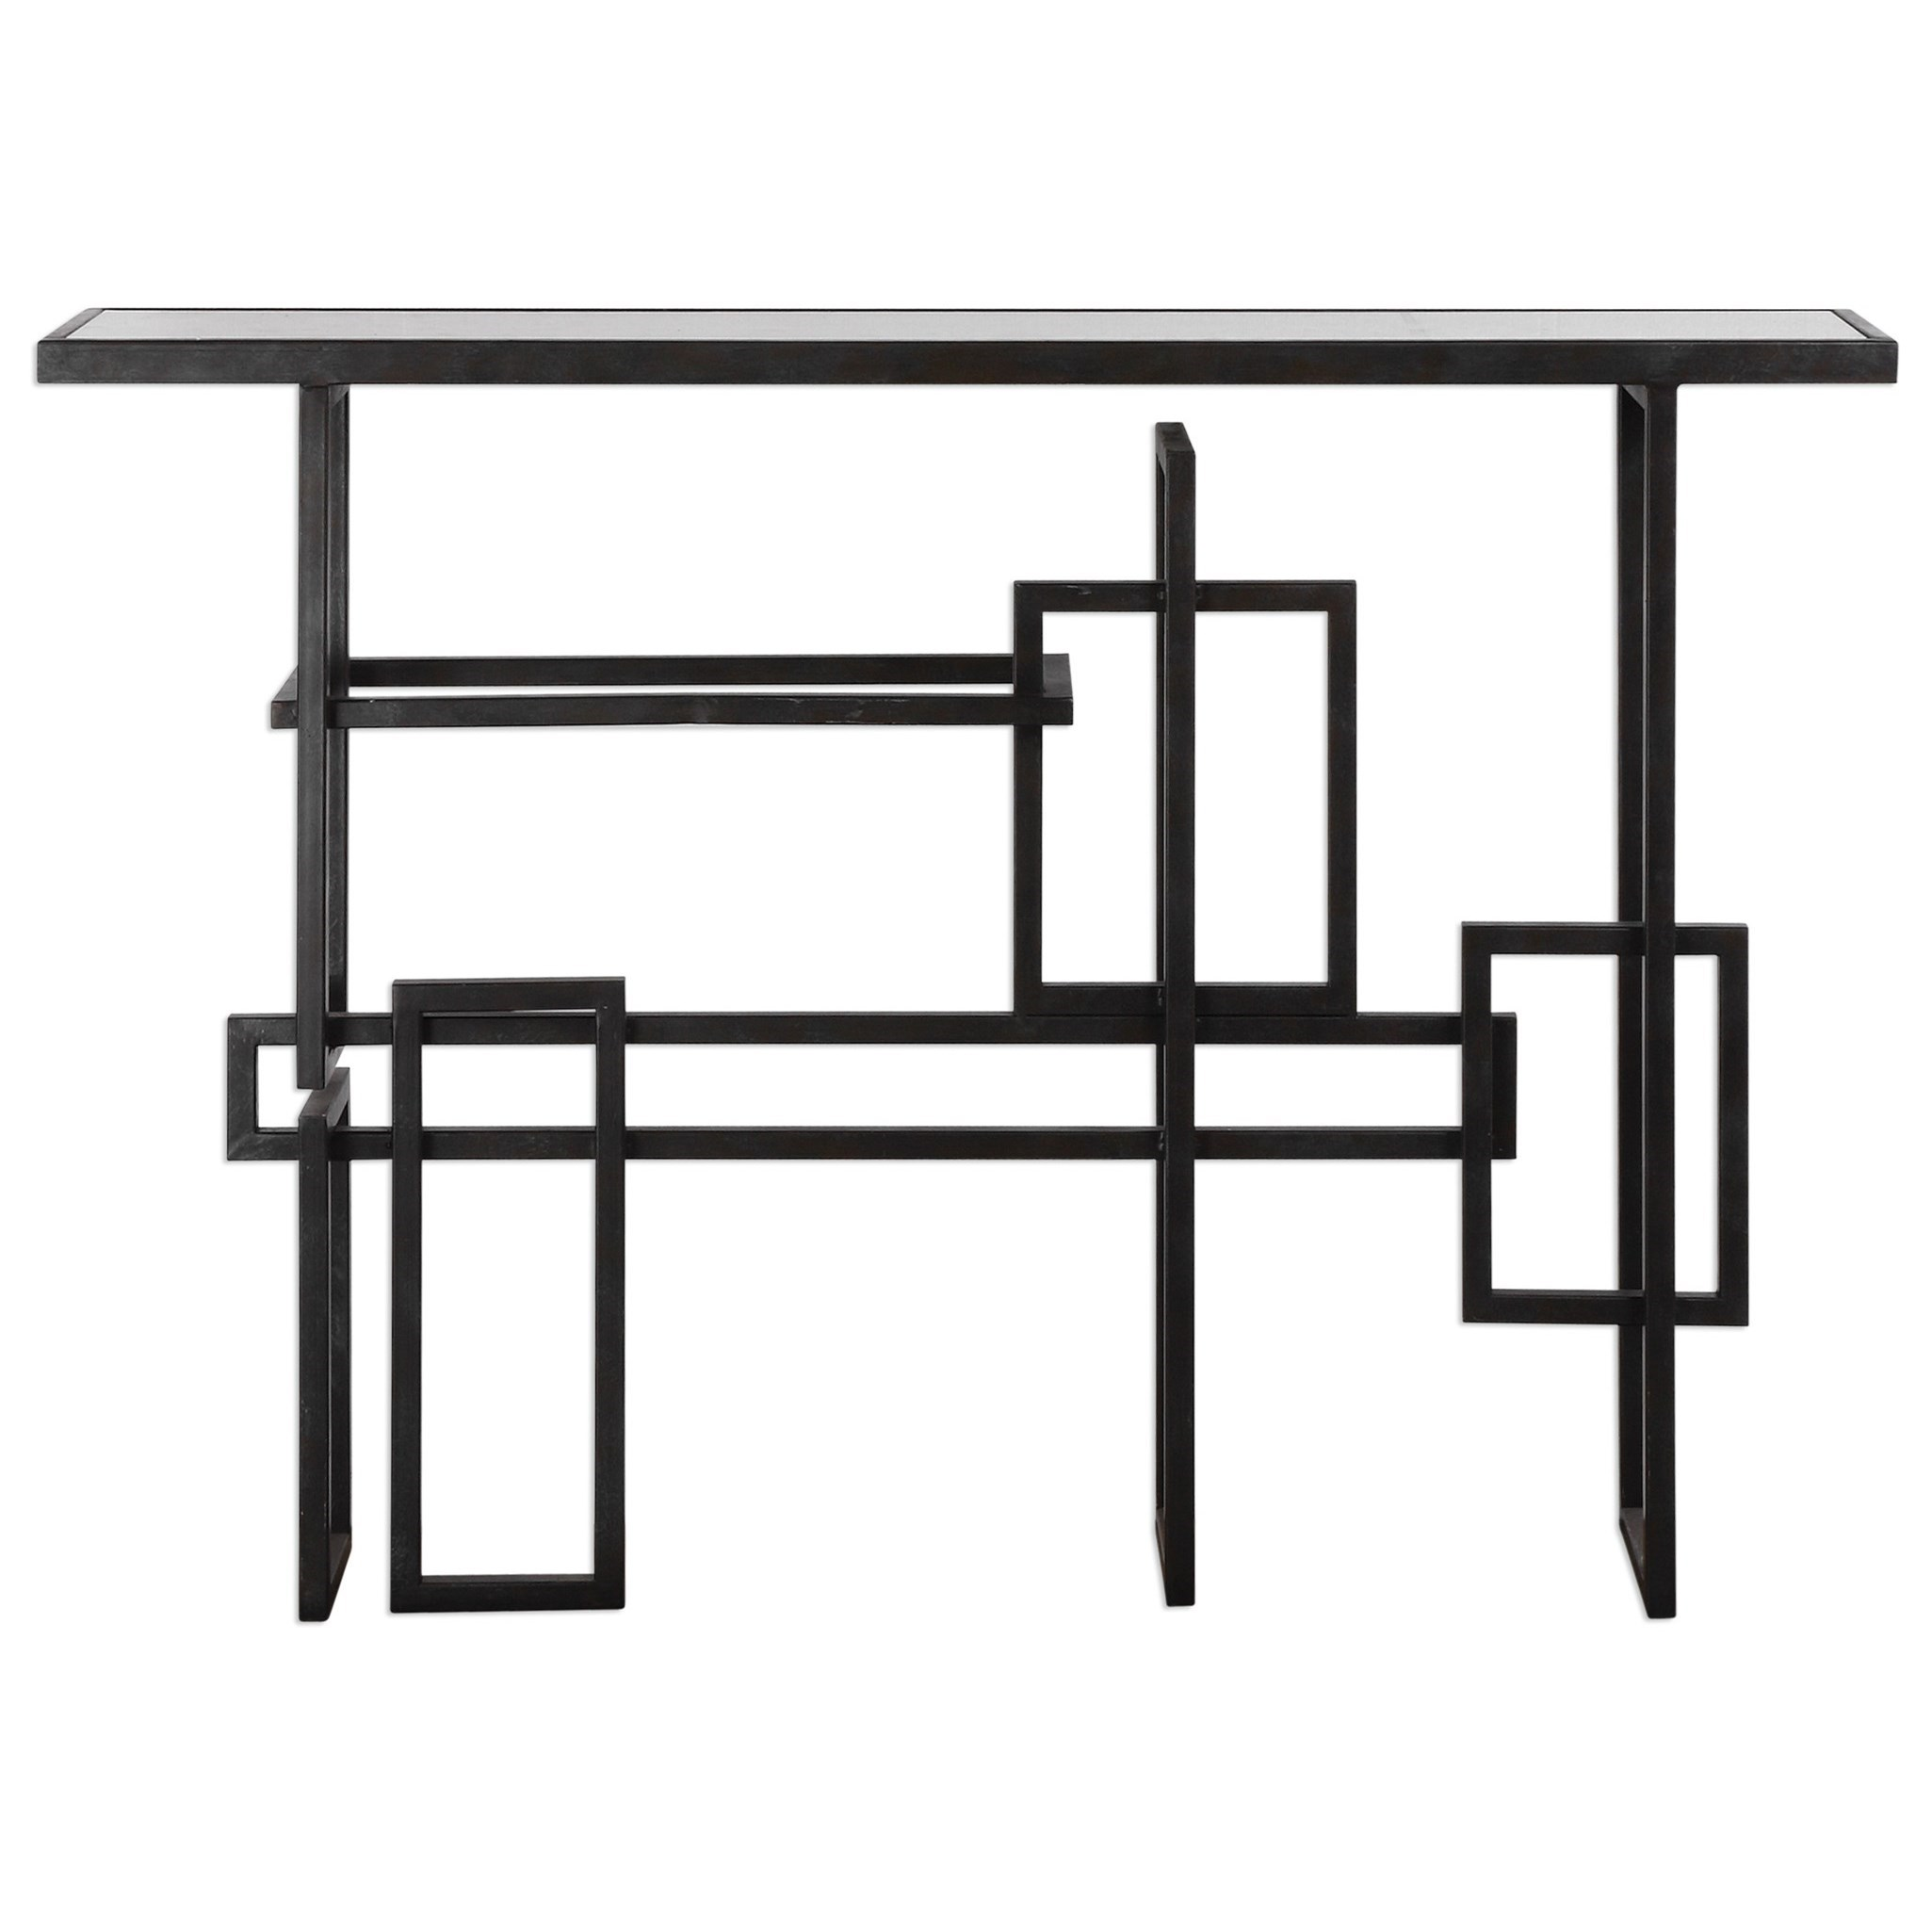 Uttermost Accent Furniture  Dane Industrial Console Table - Item Number: 24690